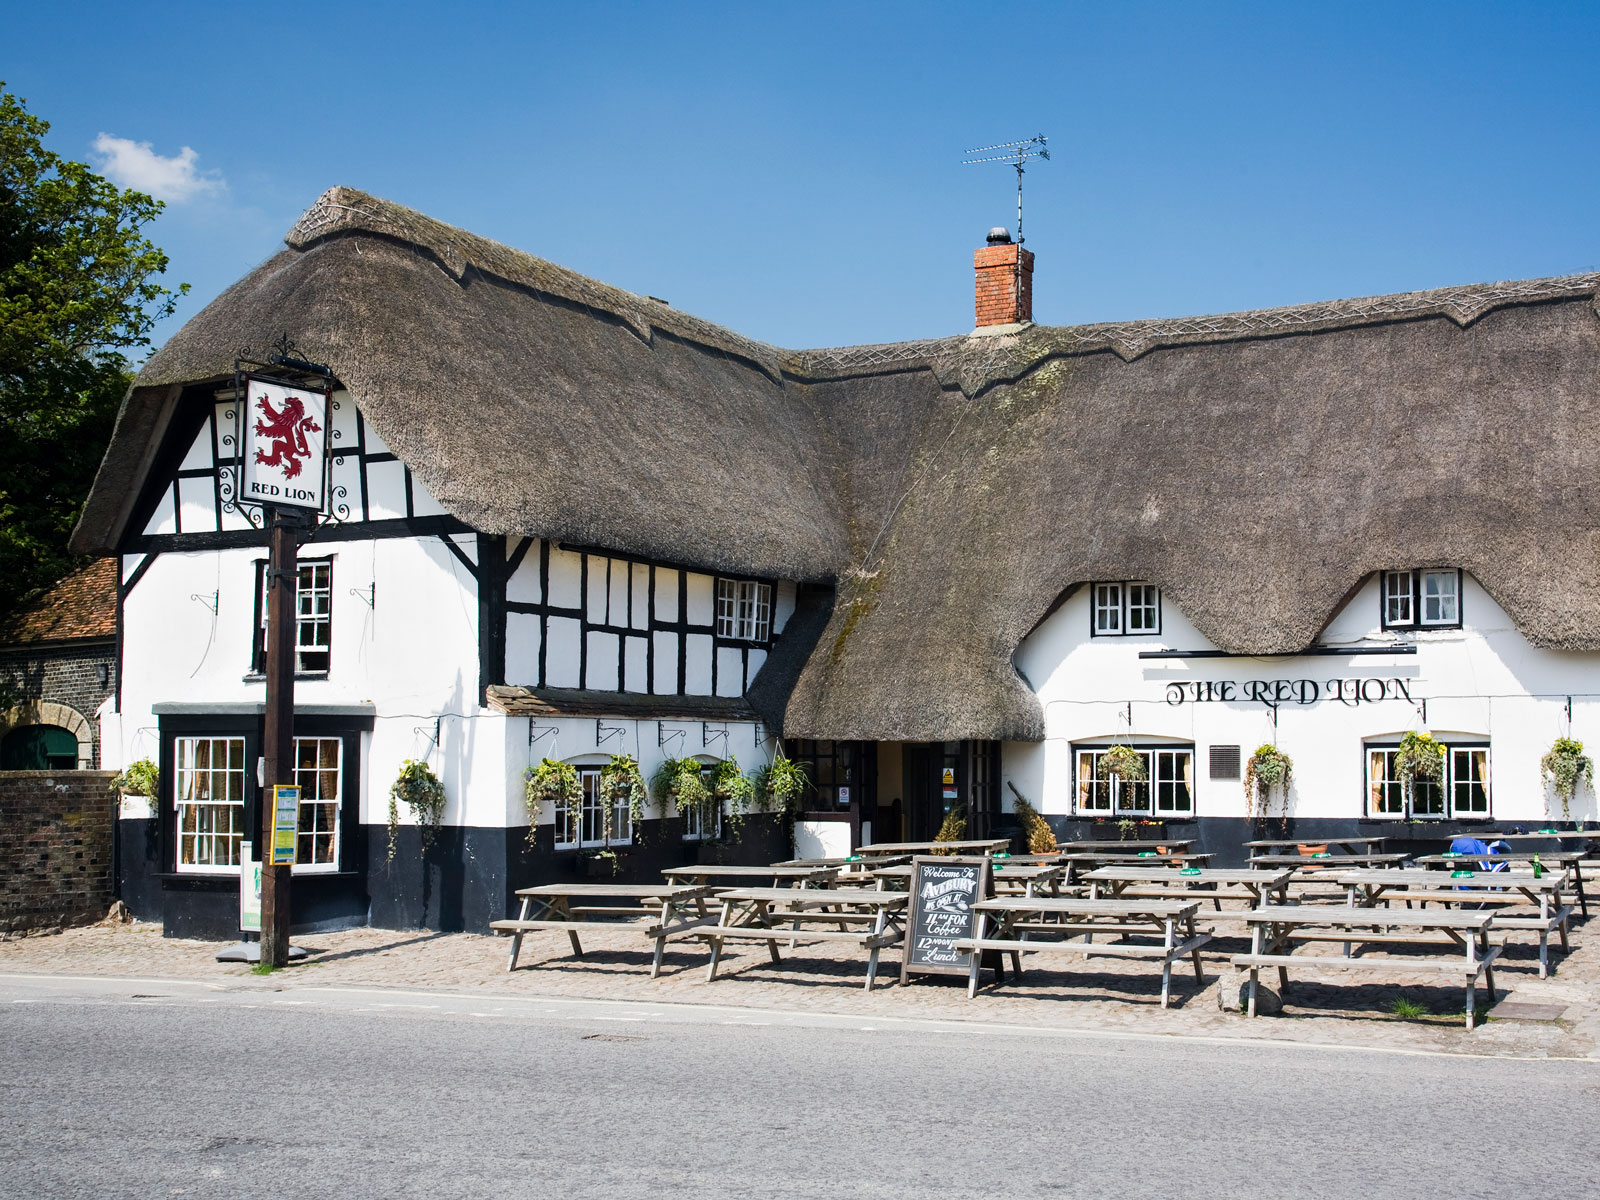 British Pubs Can Operate as Post Offices and Libraries, Thanks to Government-Backed Program